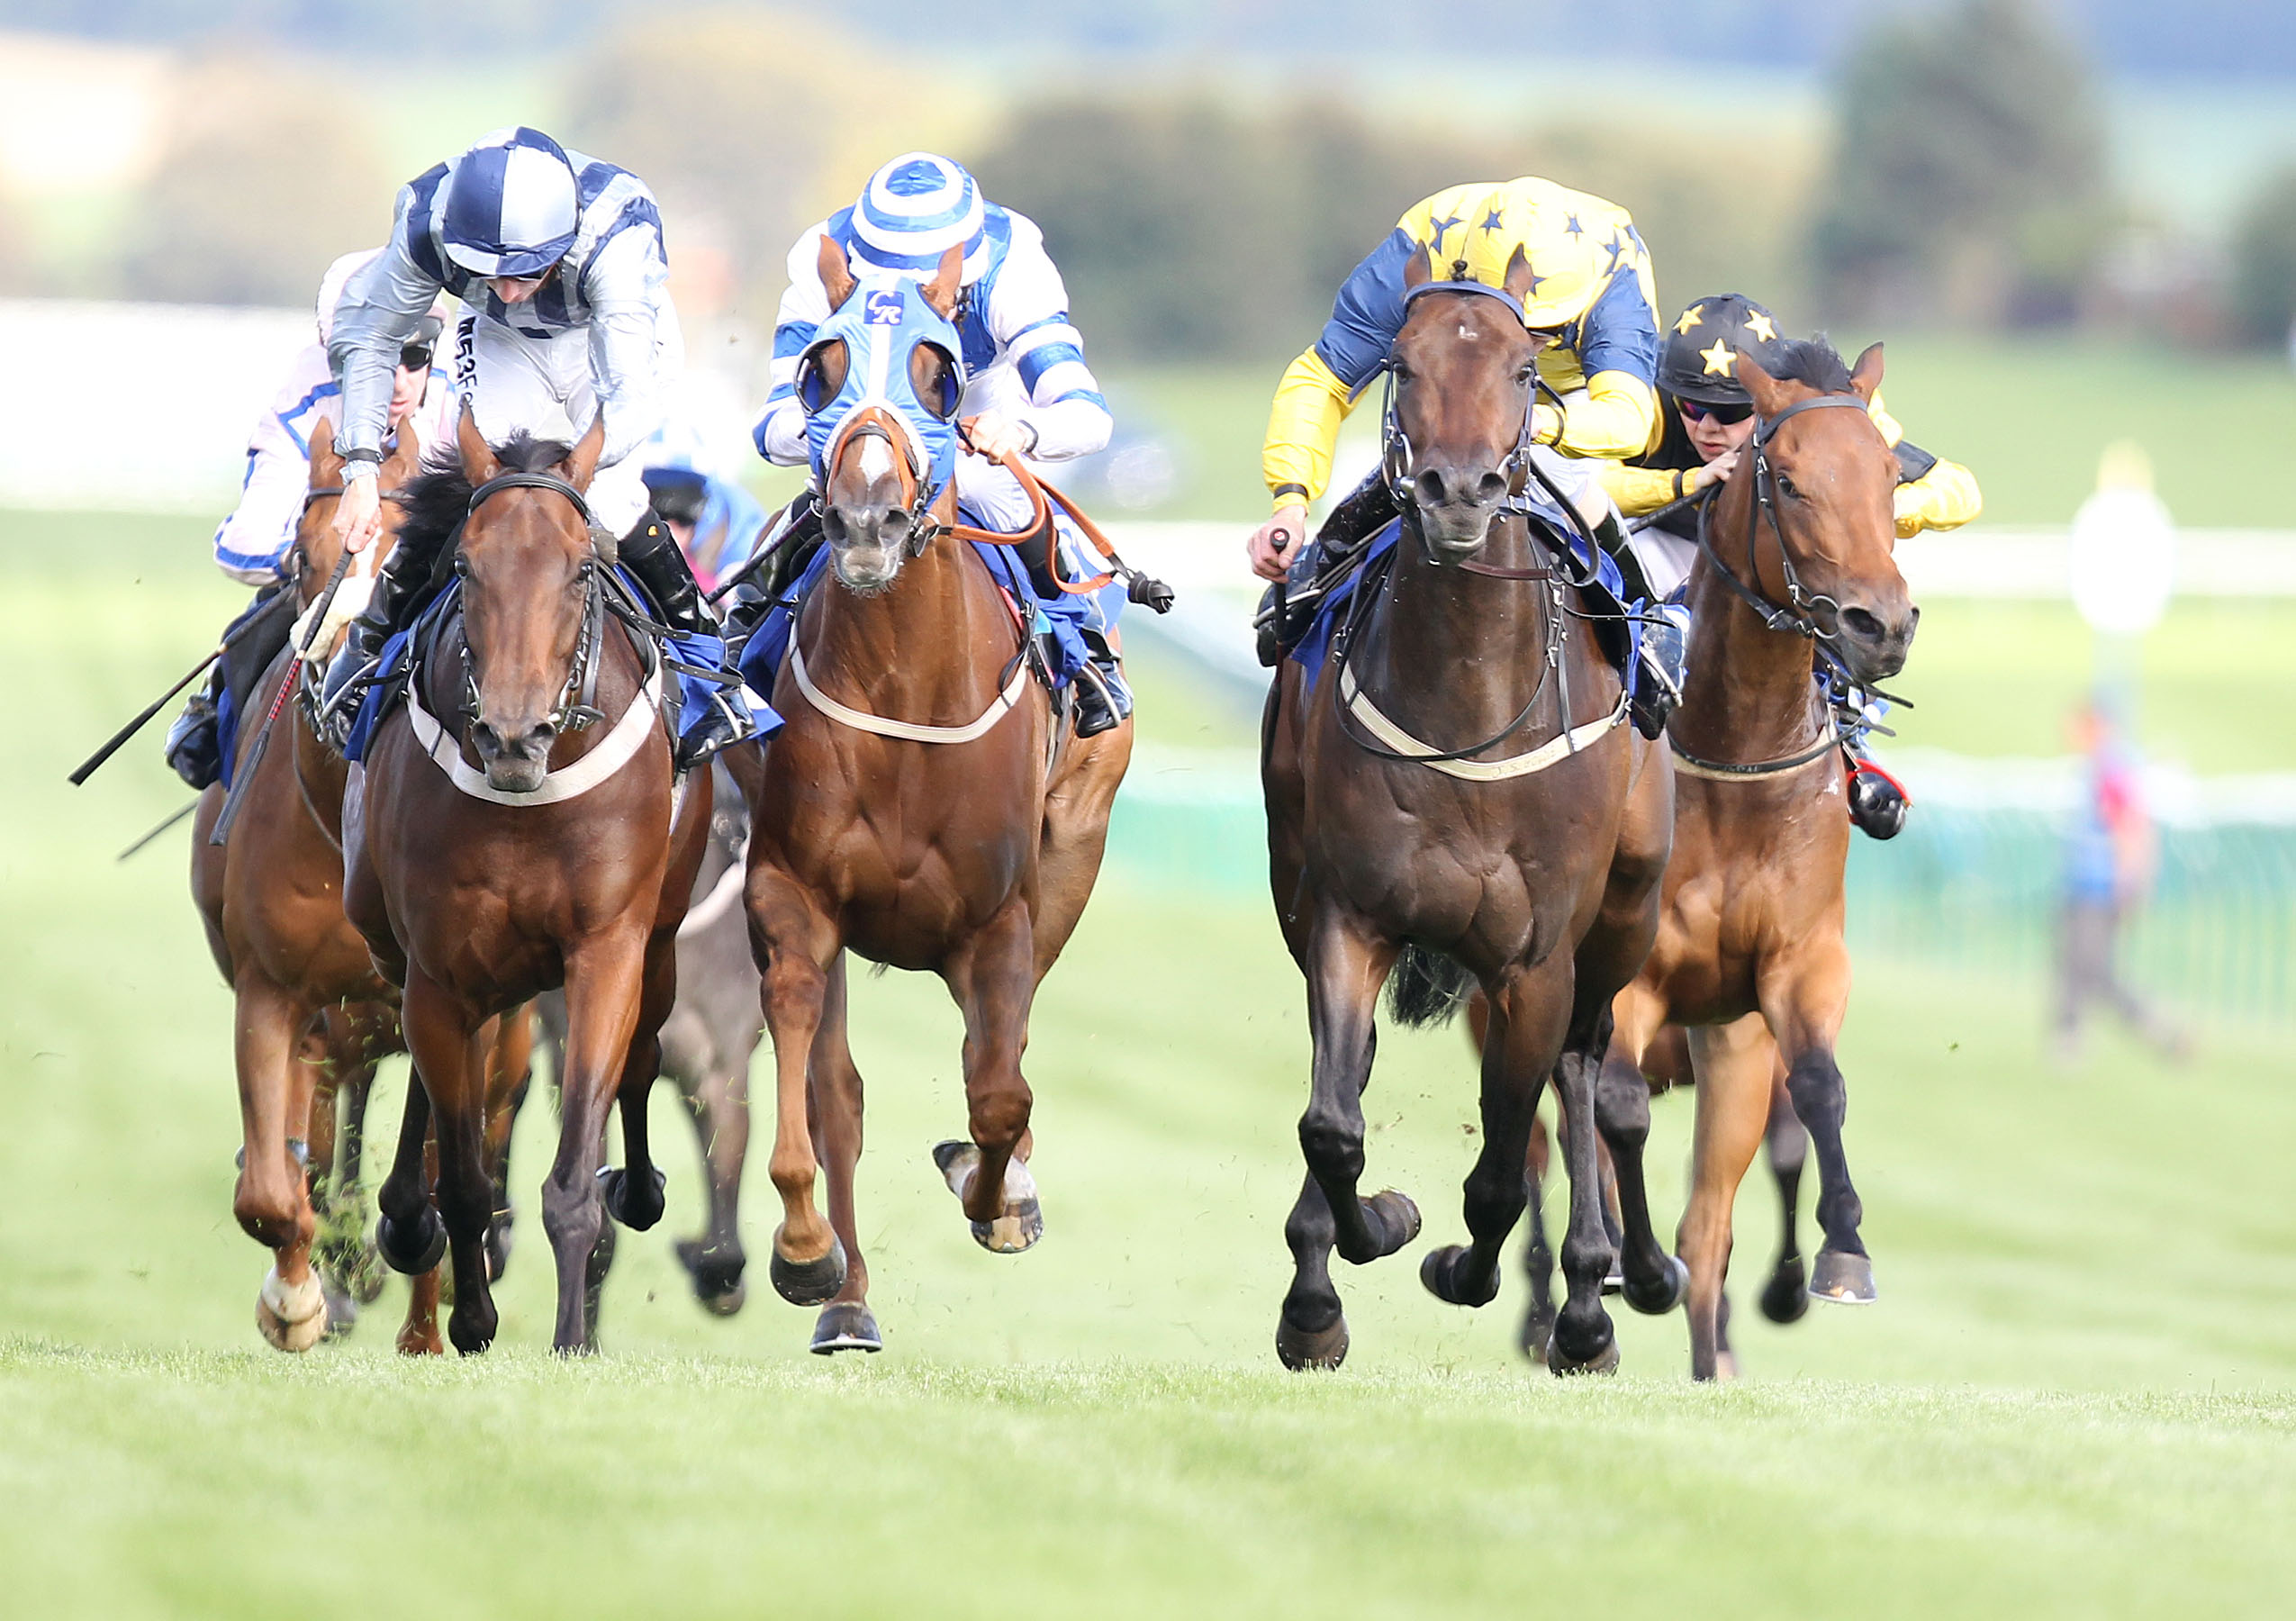 Enjoy an exhilarating day out at Ayr Racecourse